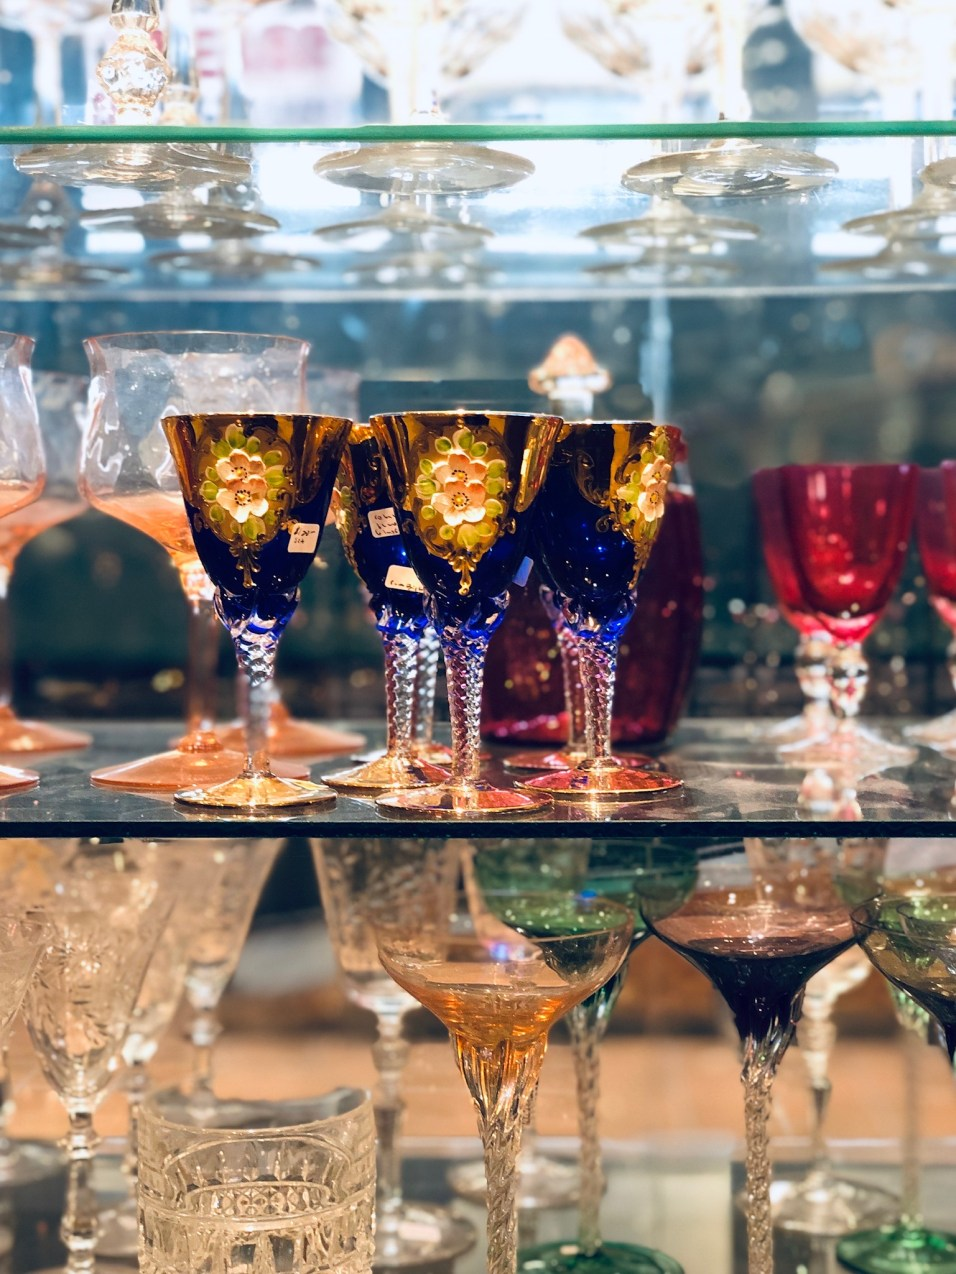 Paris Market Antiques Crystal - 28